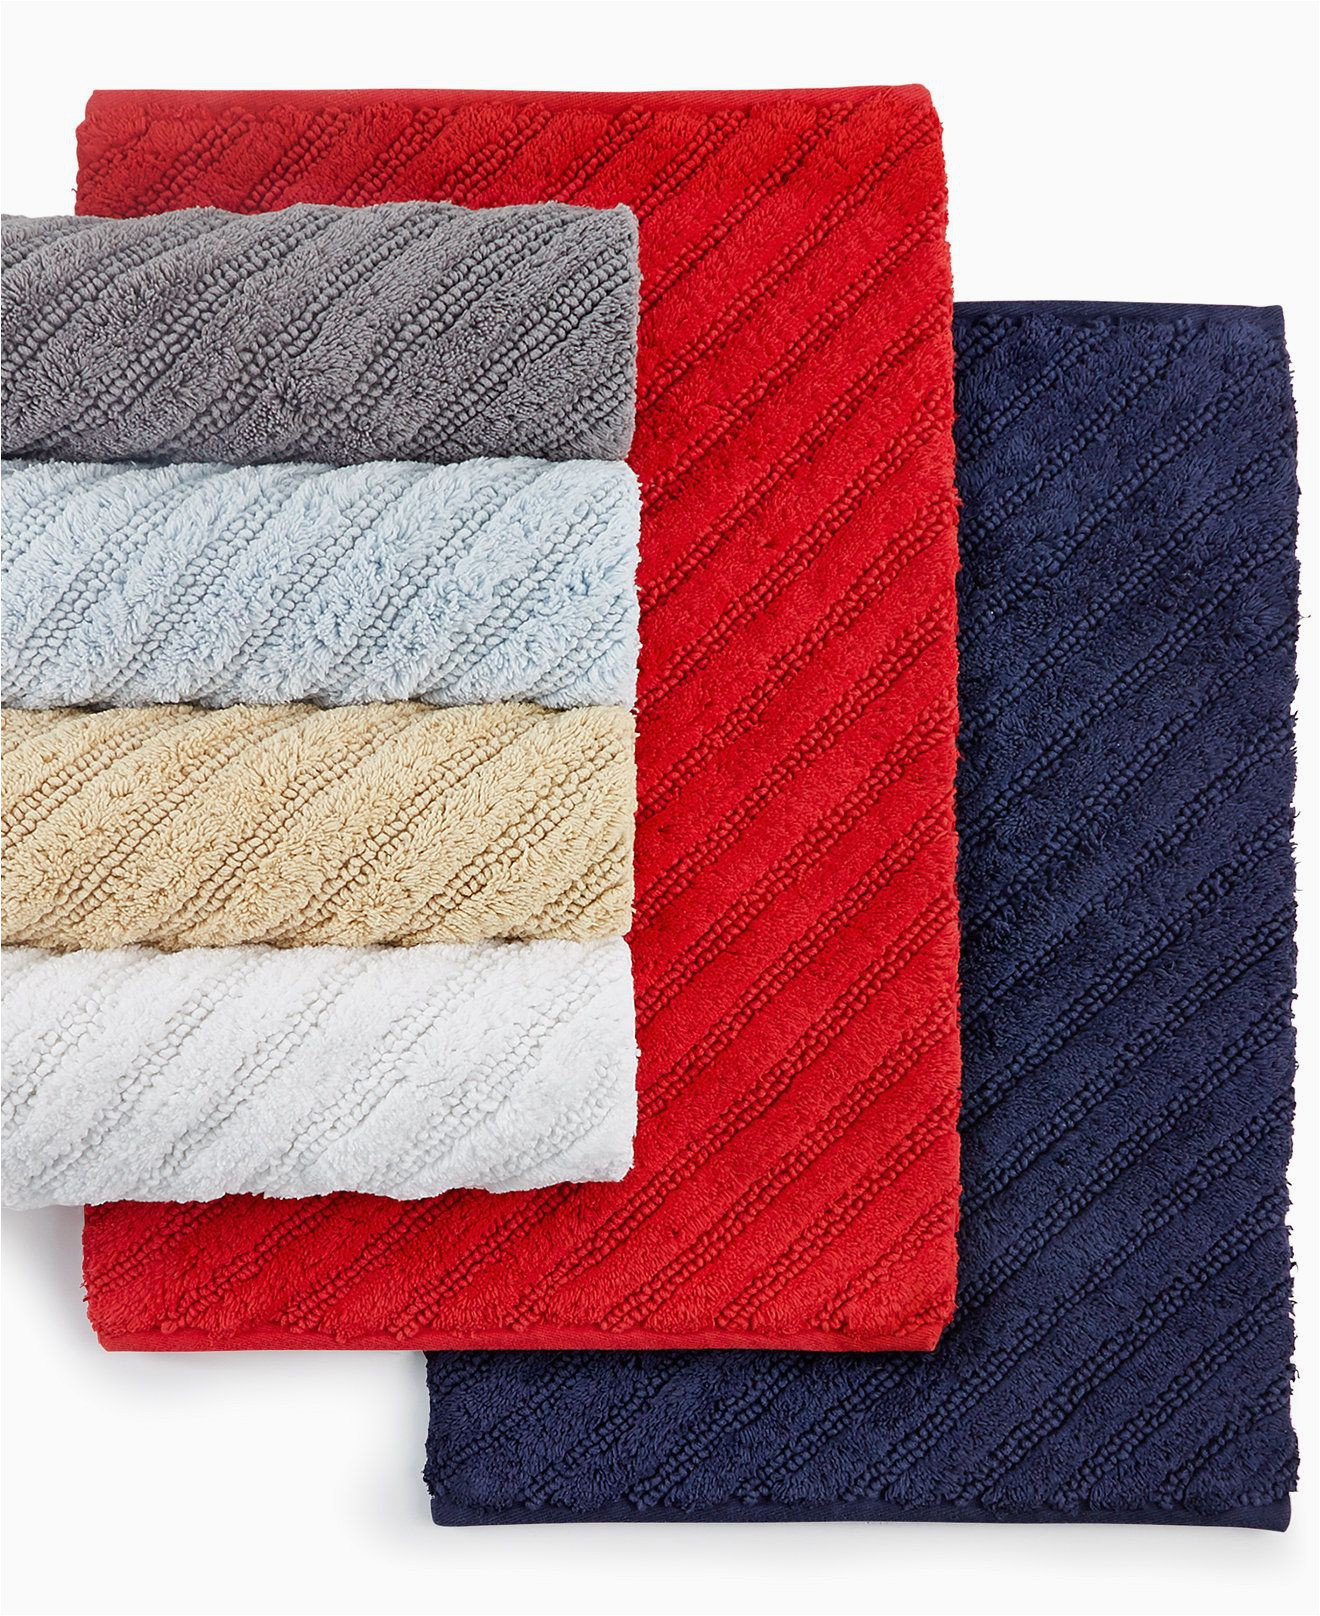 Tommy Hilfiger Set Of Two Bath Rugs Closeout tommy Hilfiger All American Bath Rug & Reviews